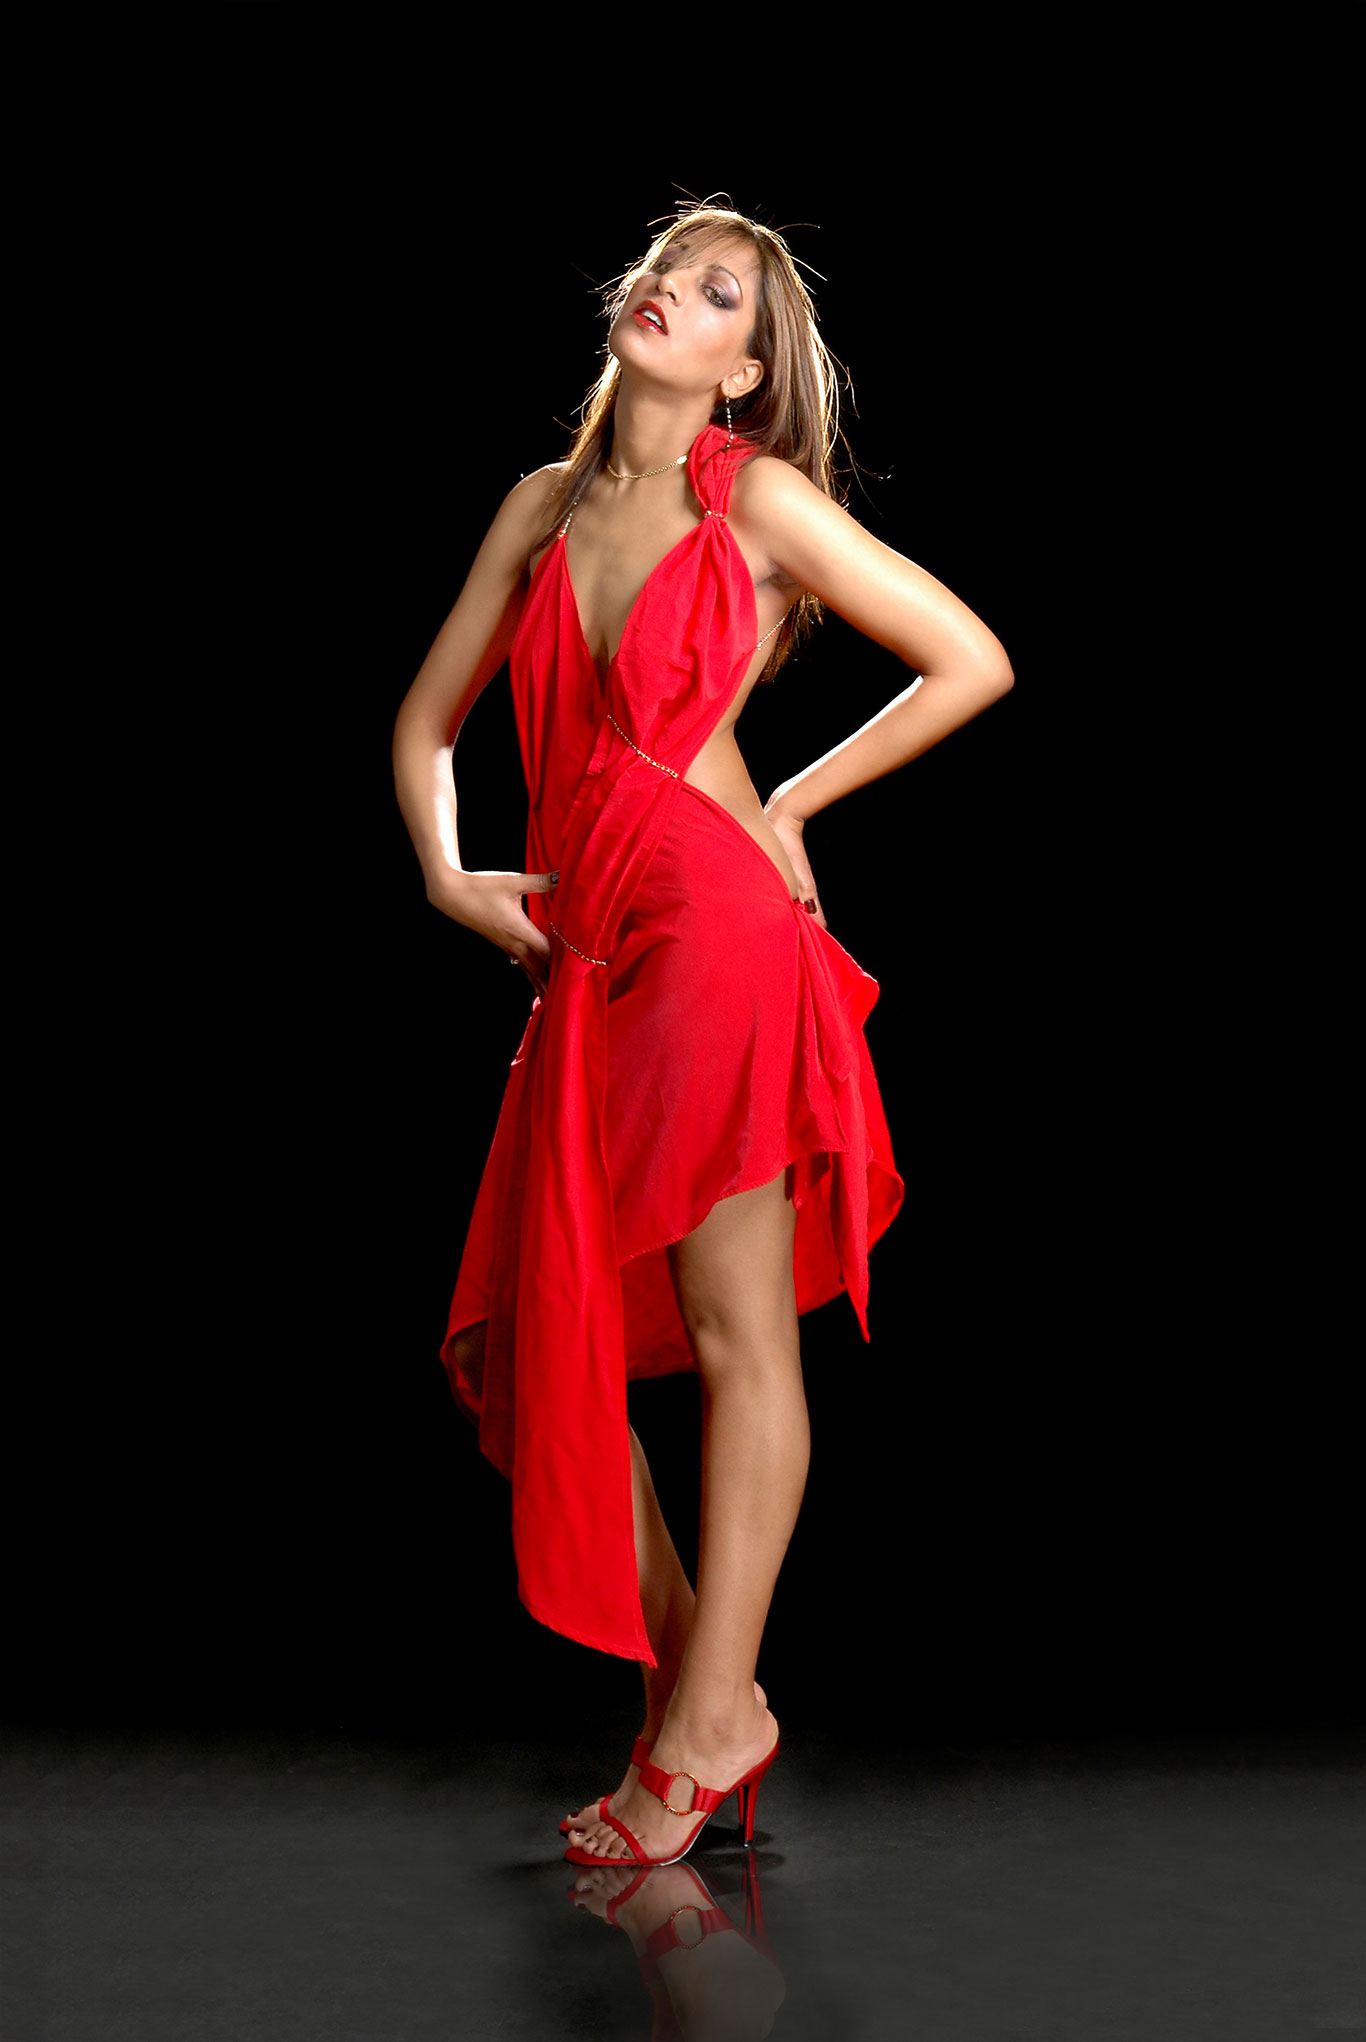 Leatherhead model in red dress by Epsom Photographer Ray Ball Surrey KT18